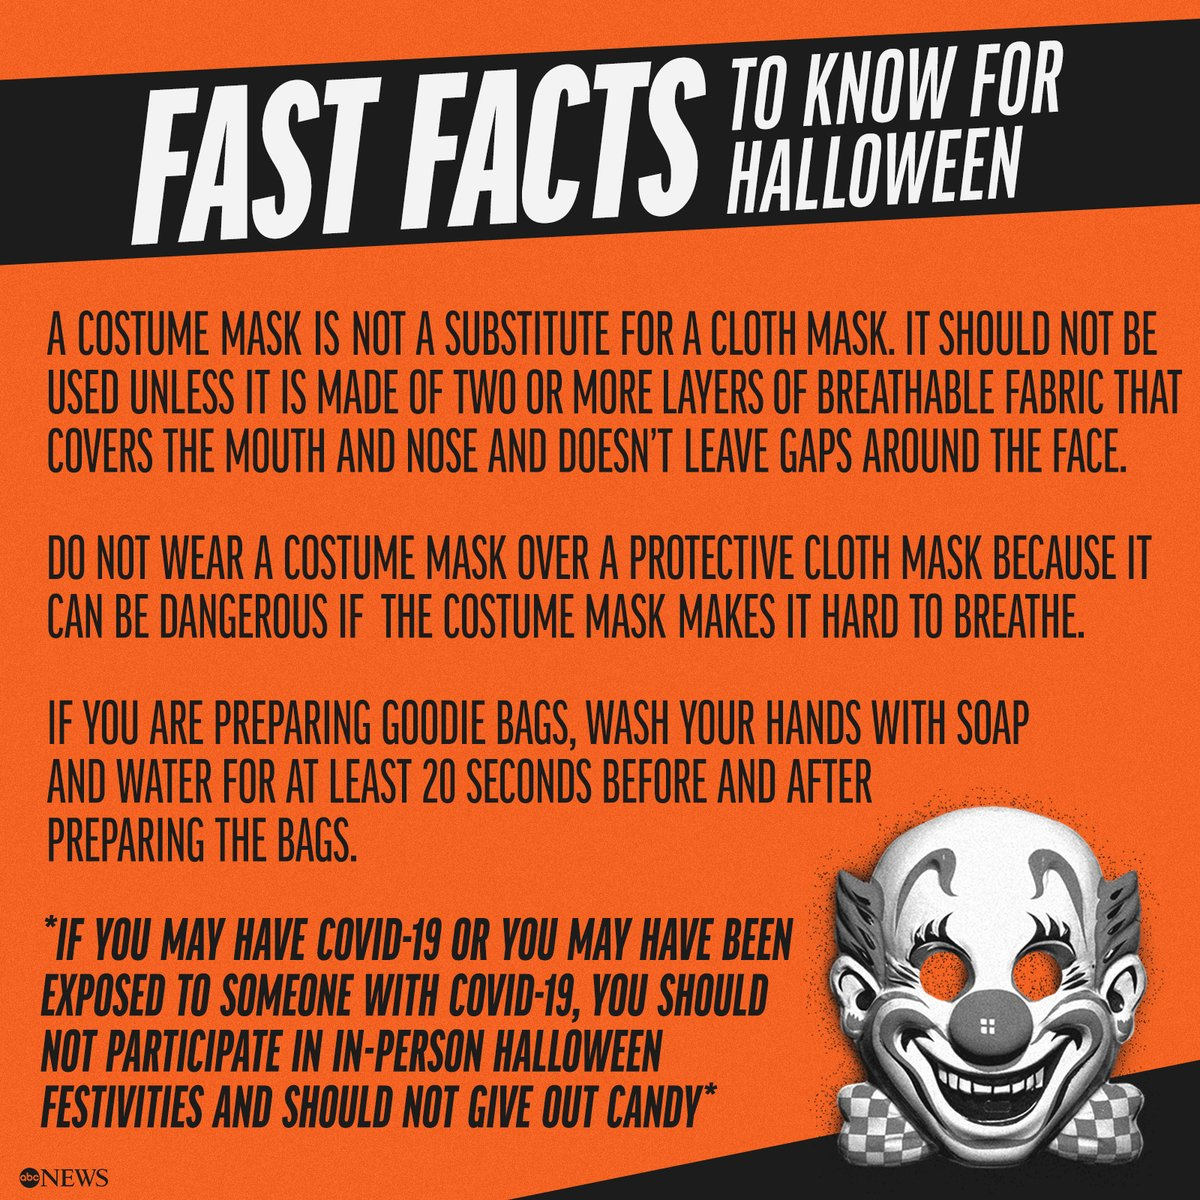 Halloween will need to be done differently this year in order to keep people safe amid the coronavirus pandemic. Here are the CDC's guidelines on how to celebrate safely.